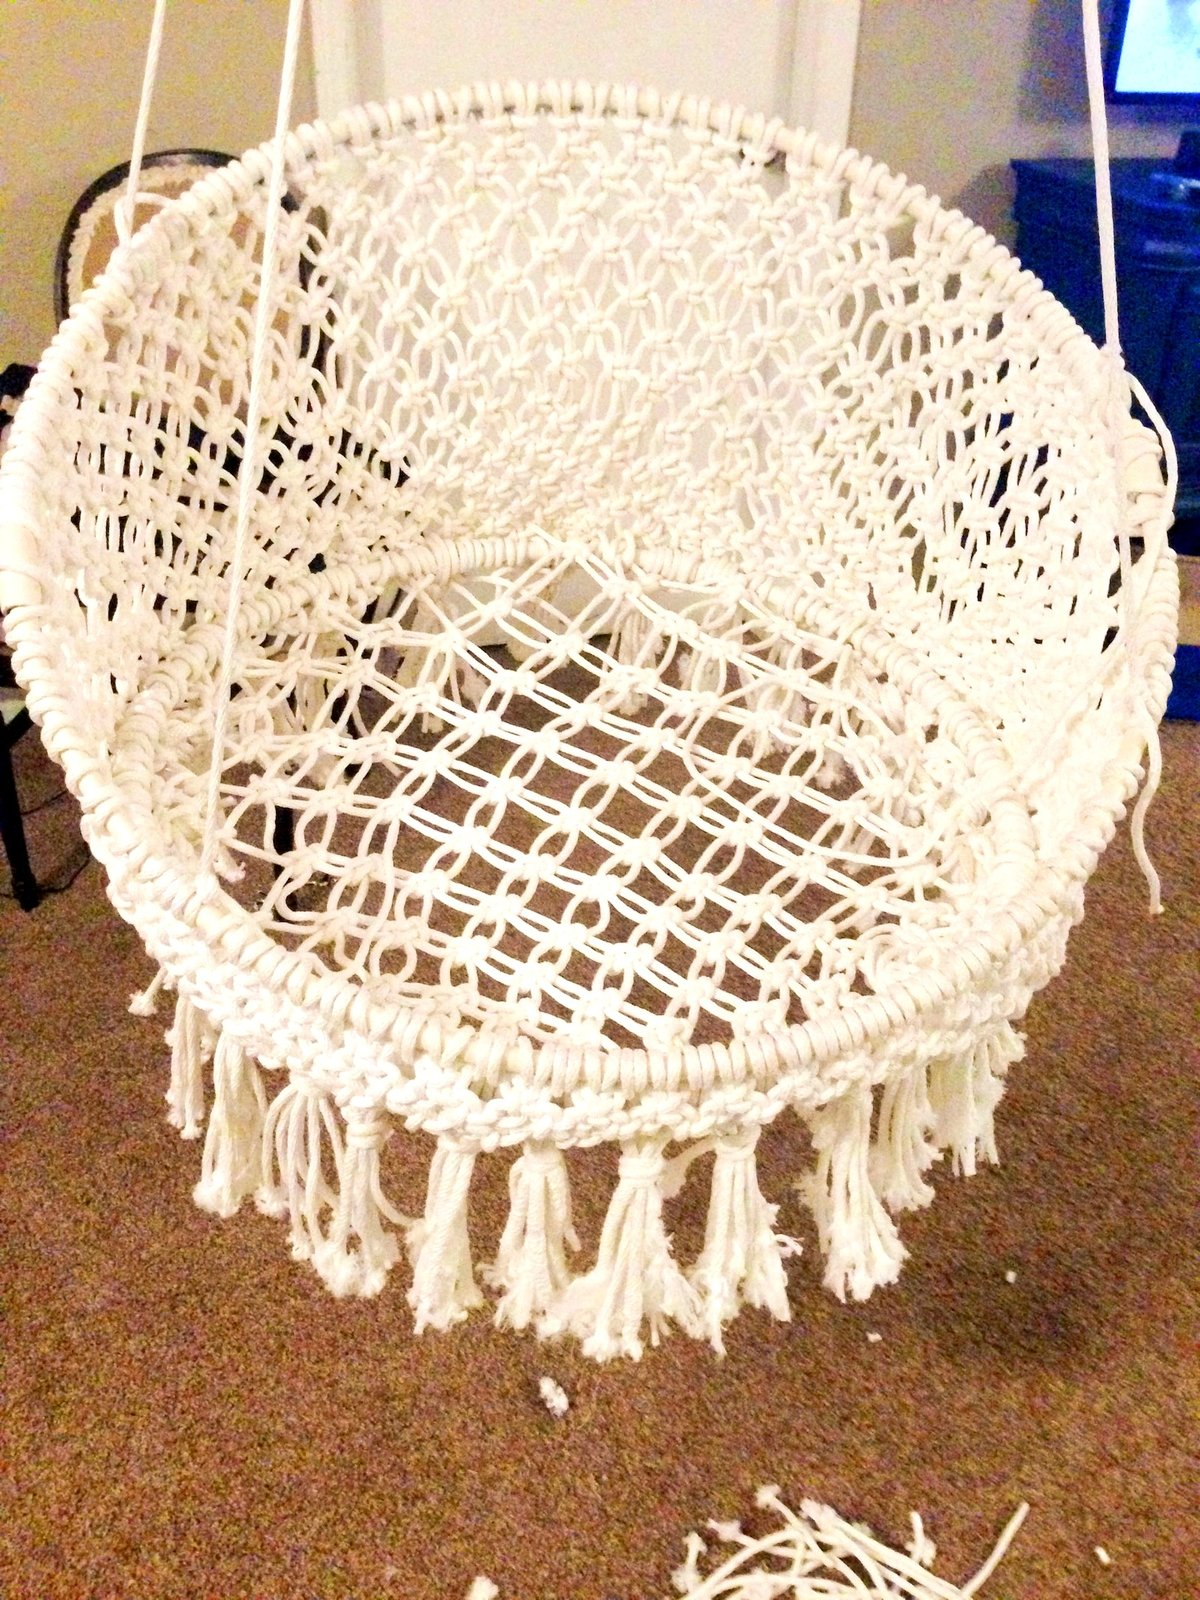 Bedroom Knockout Handmade Ooak Macrame Vintage Retro Style Hanging Majikhorse Hammock Chair Dbadccddefdec Instructions Hippy